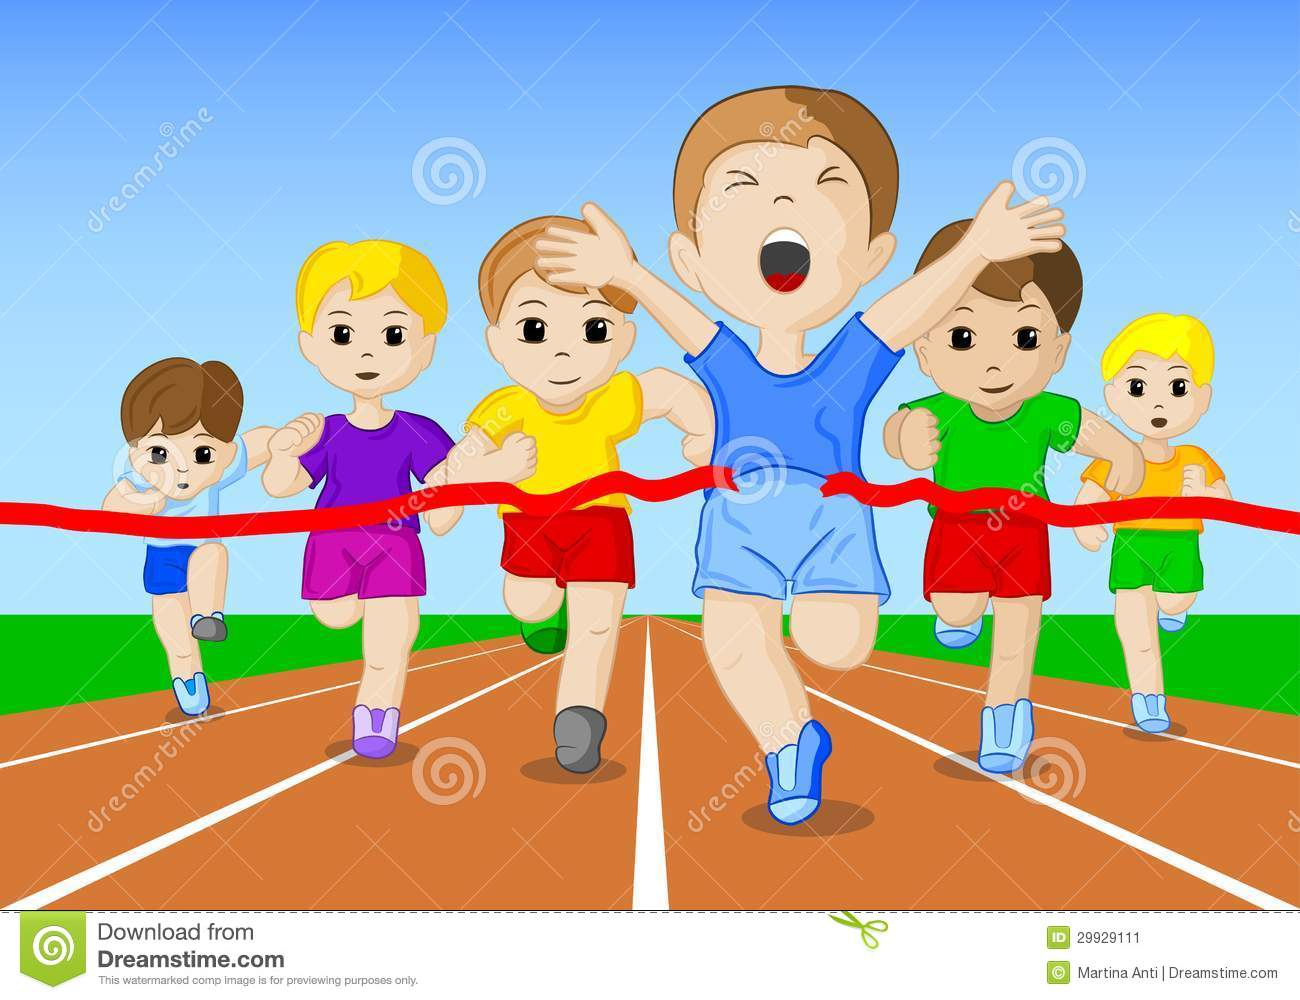 Race clipart child athletics Race%20clipart Clipart Clipart Art Images